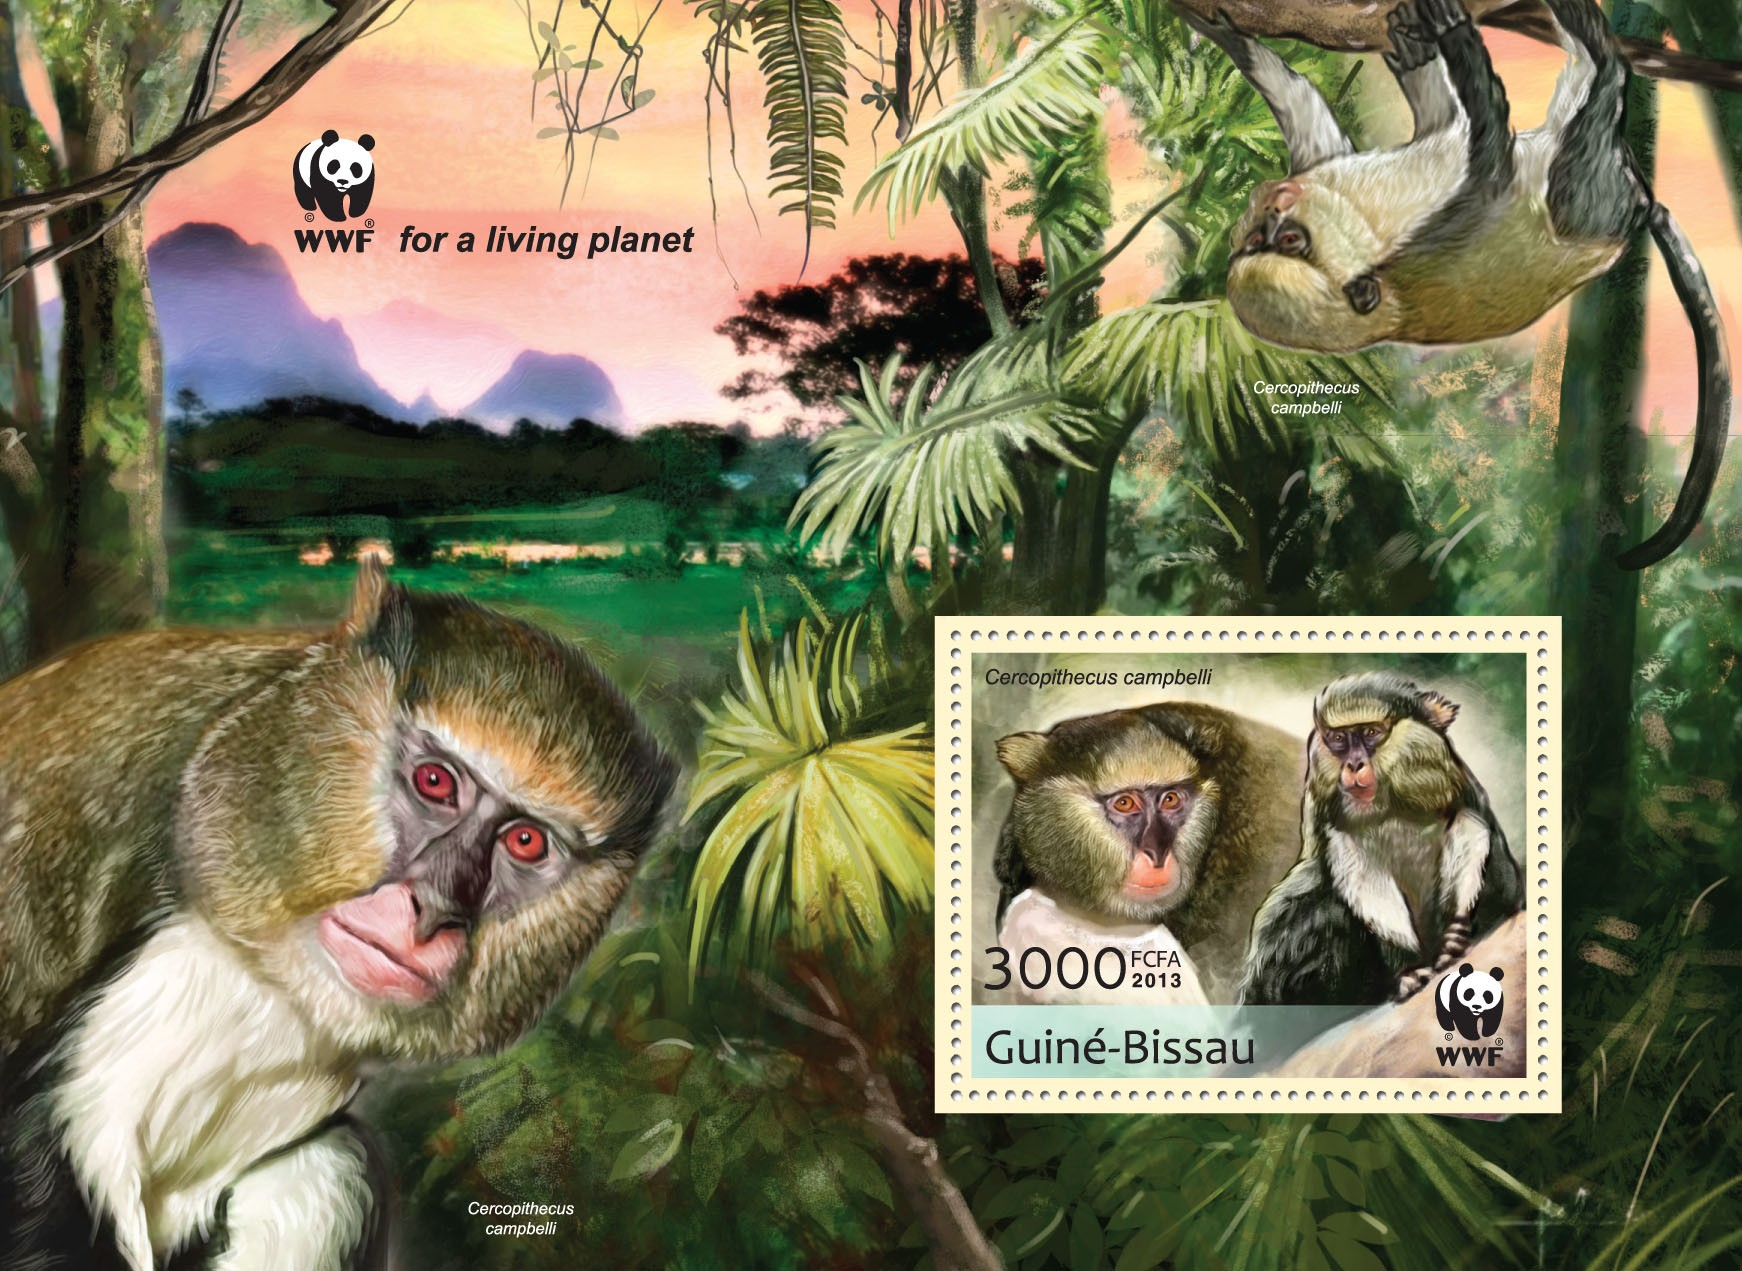 WWF - Monkeys (Cercopithecus campgelli) Souvenir sheet -  Perforated - Issue of Guinée-Bissau postage stamps